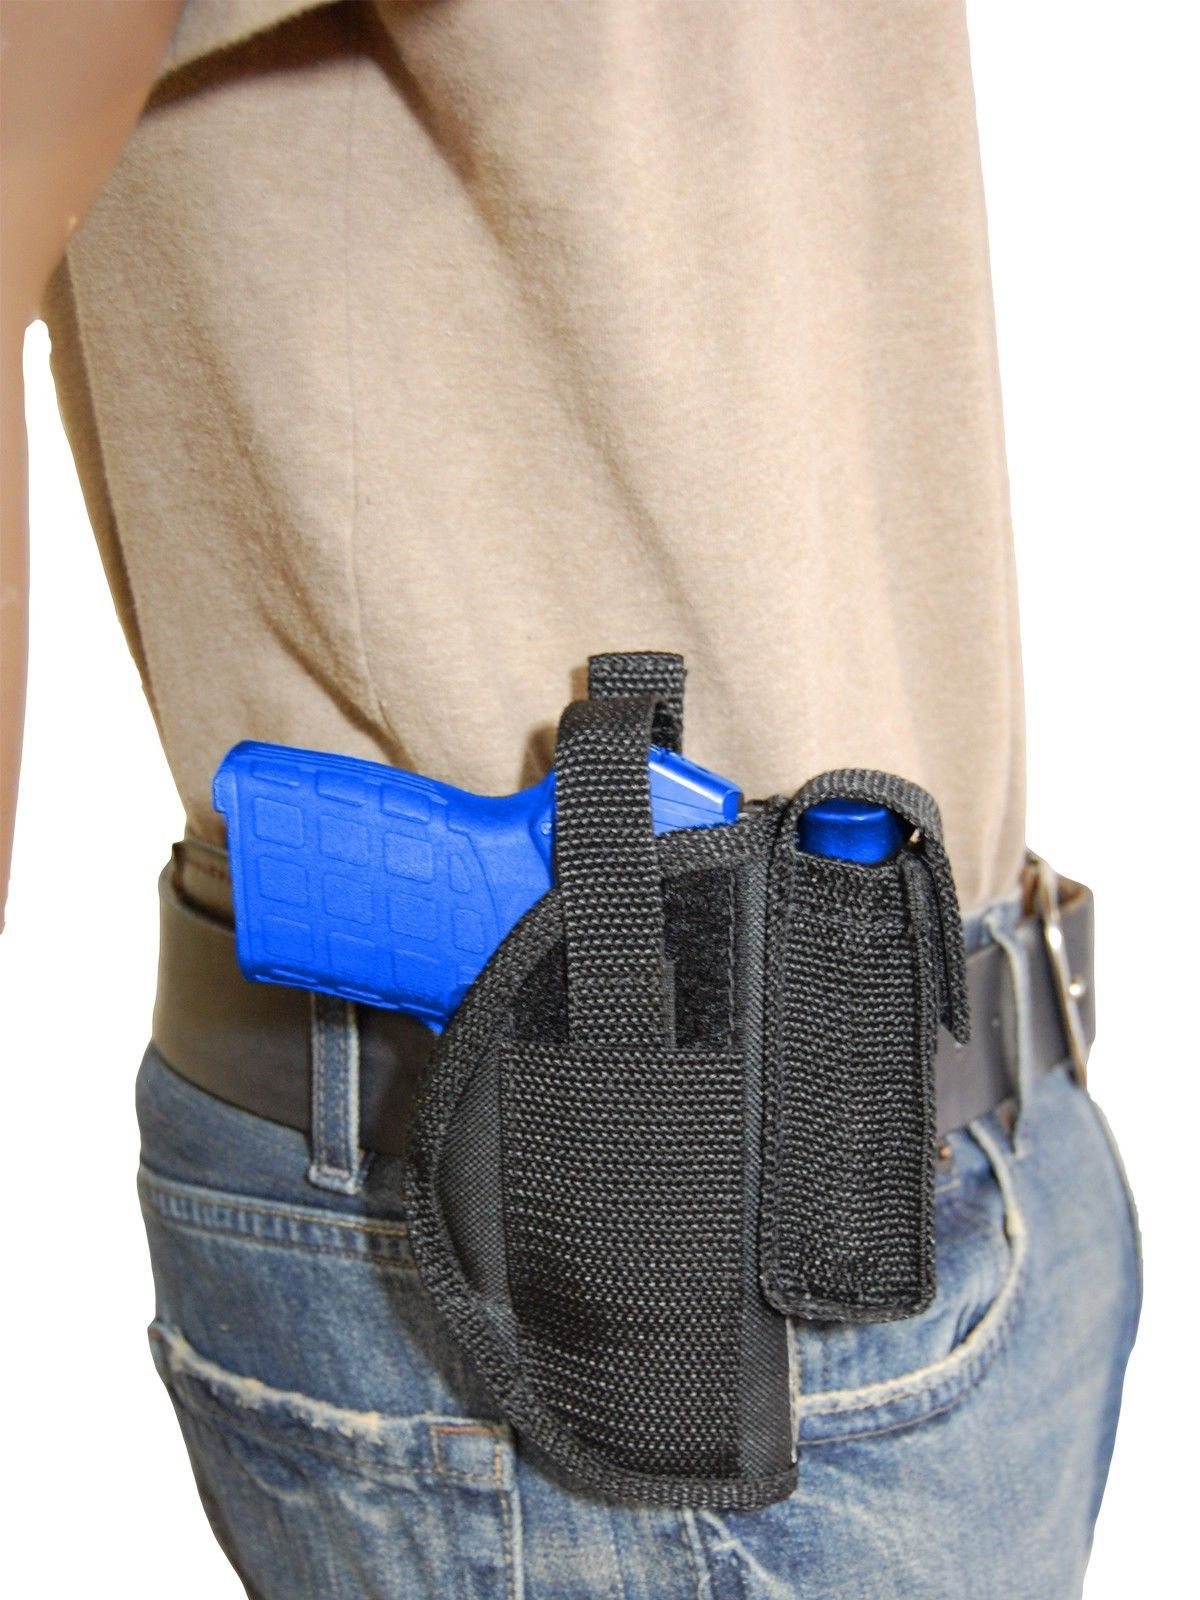 New Barsony Belt Loop Holster w/ Mag Pouch Paraordnance 380 Ultra-Compact 9mm 40